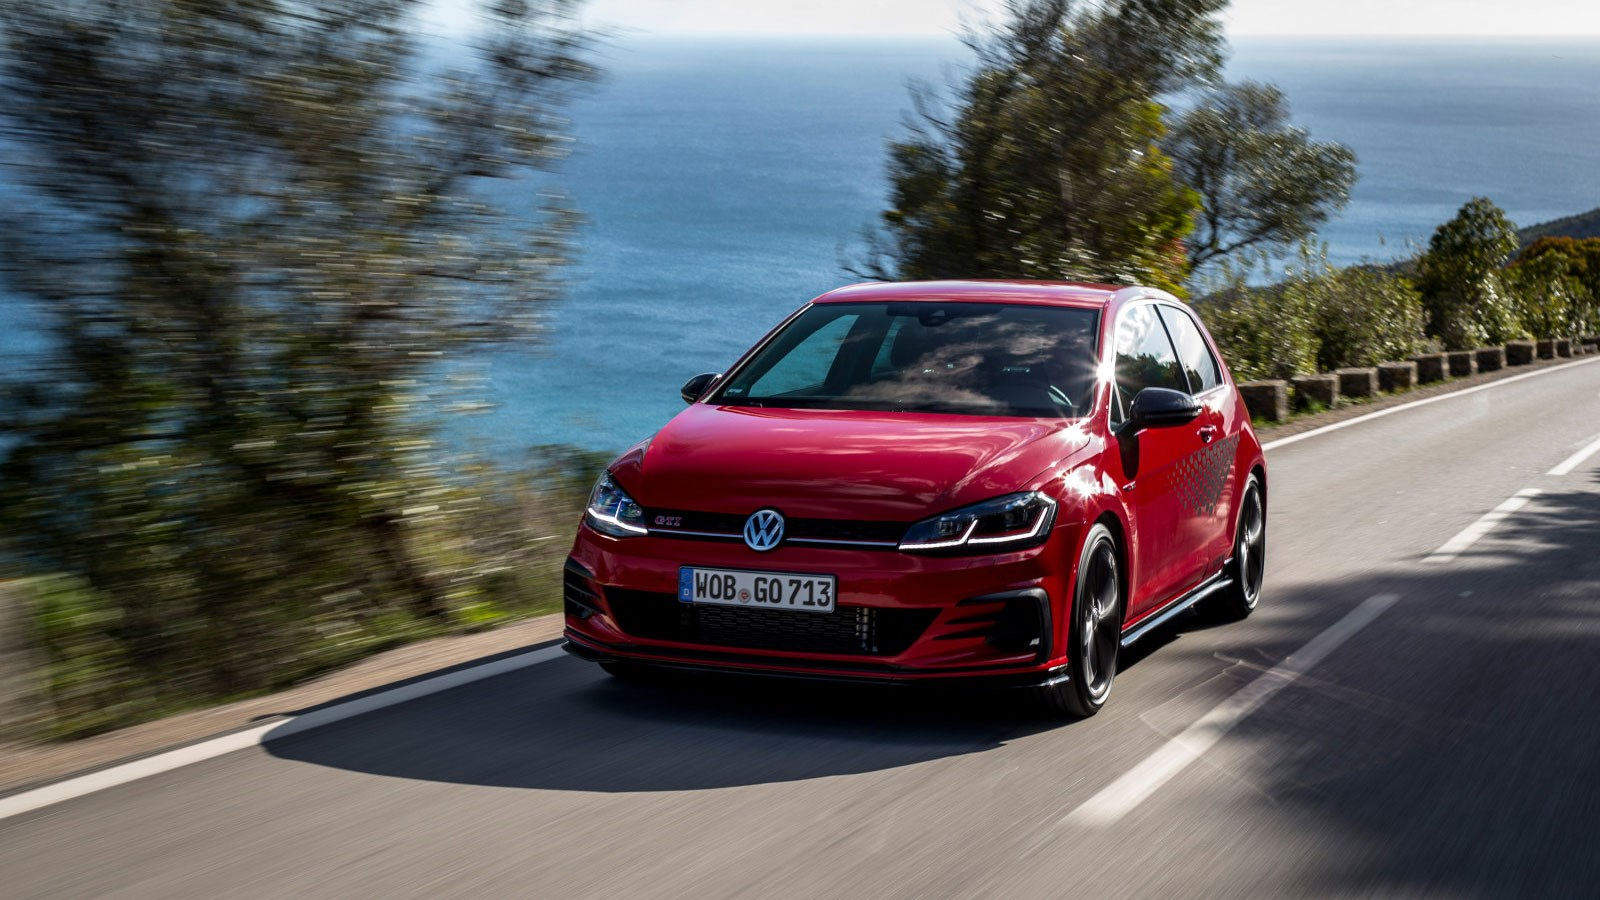 vw golf gti tcr review car magazinethe vw golf gti tcr on the road